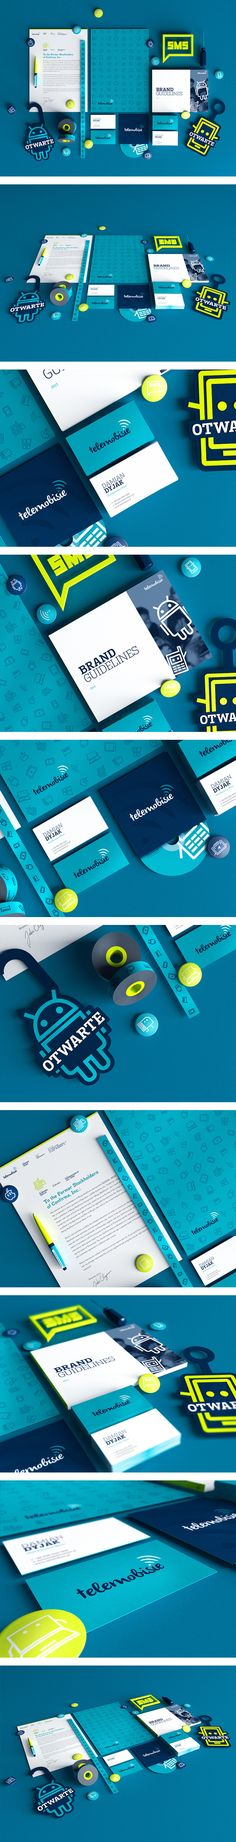 Telemobisie identity - Love these colours together! Bold and fun.